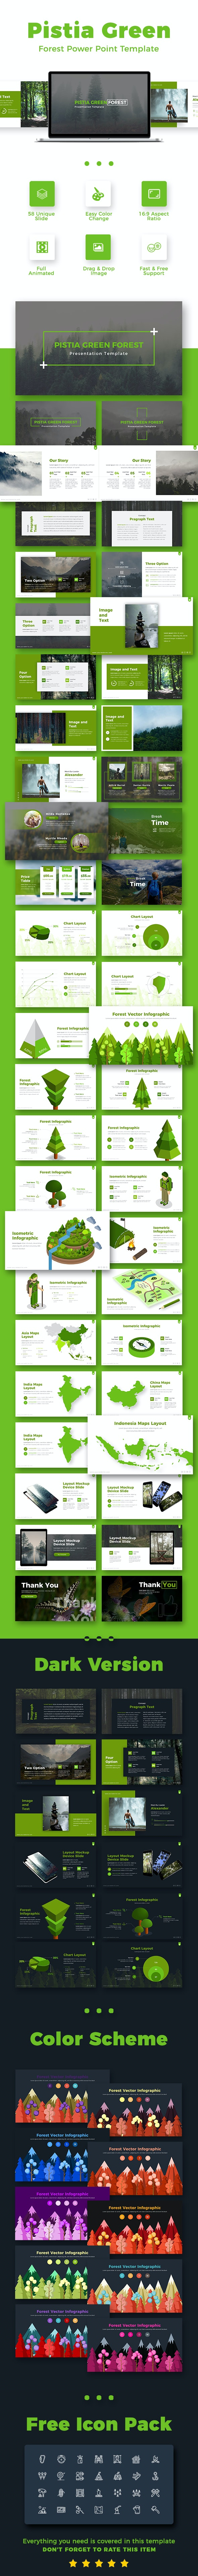 Pistia Forest Presentation Template - Nature PowerPoint Templates